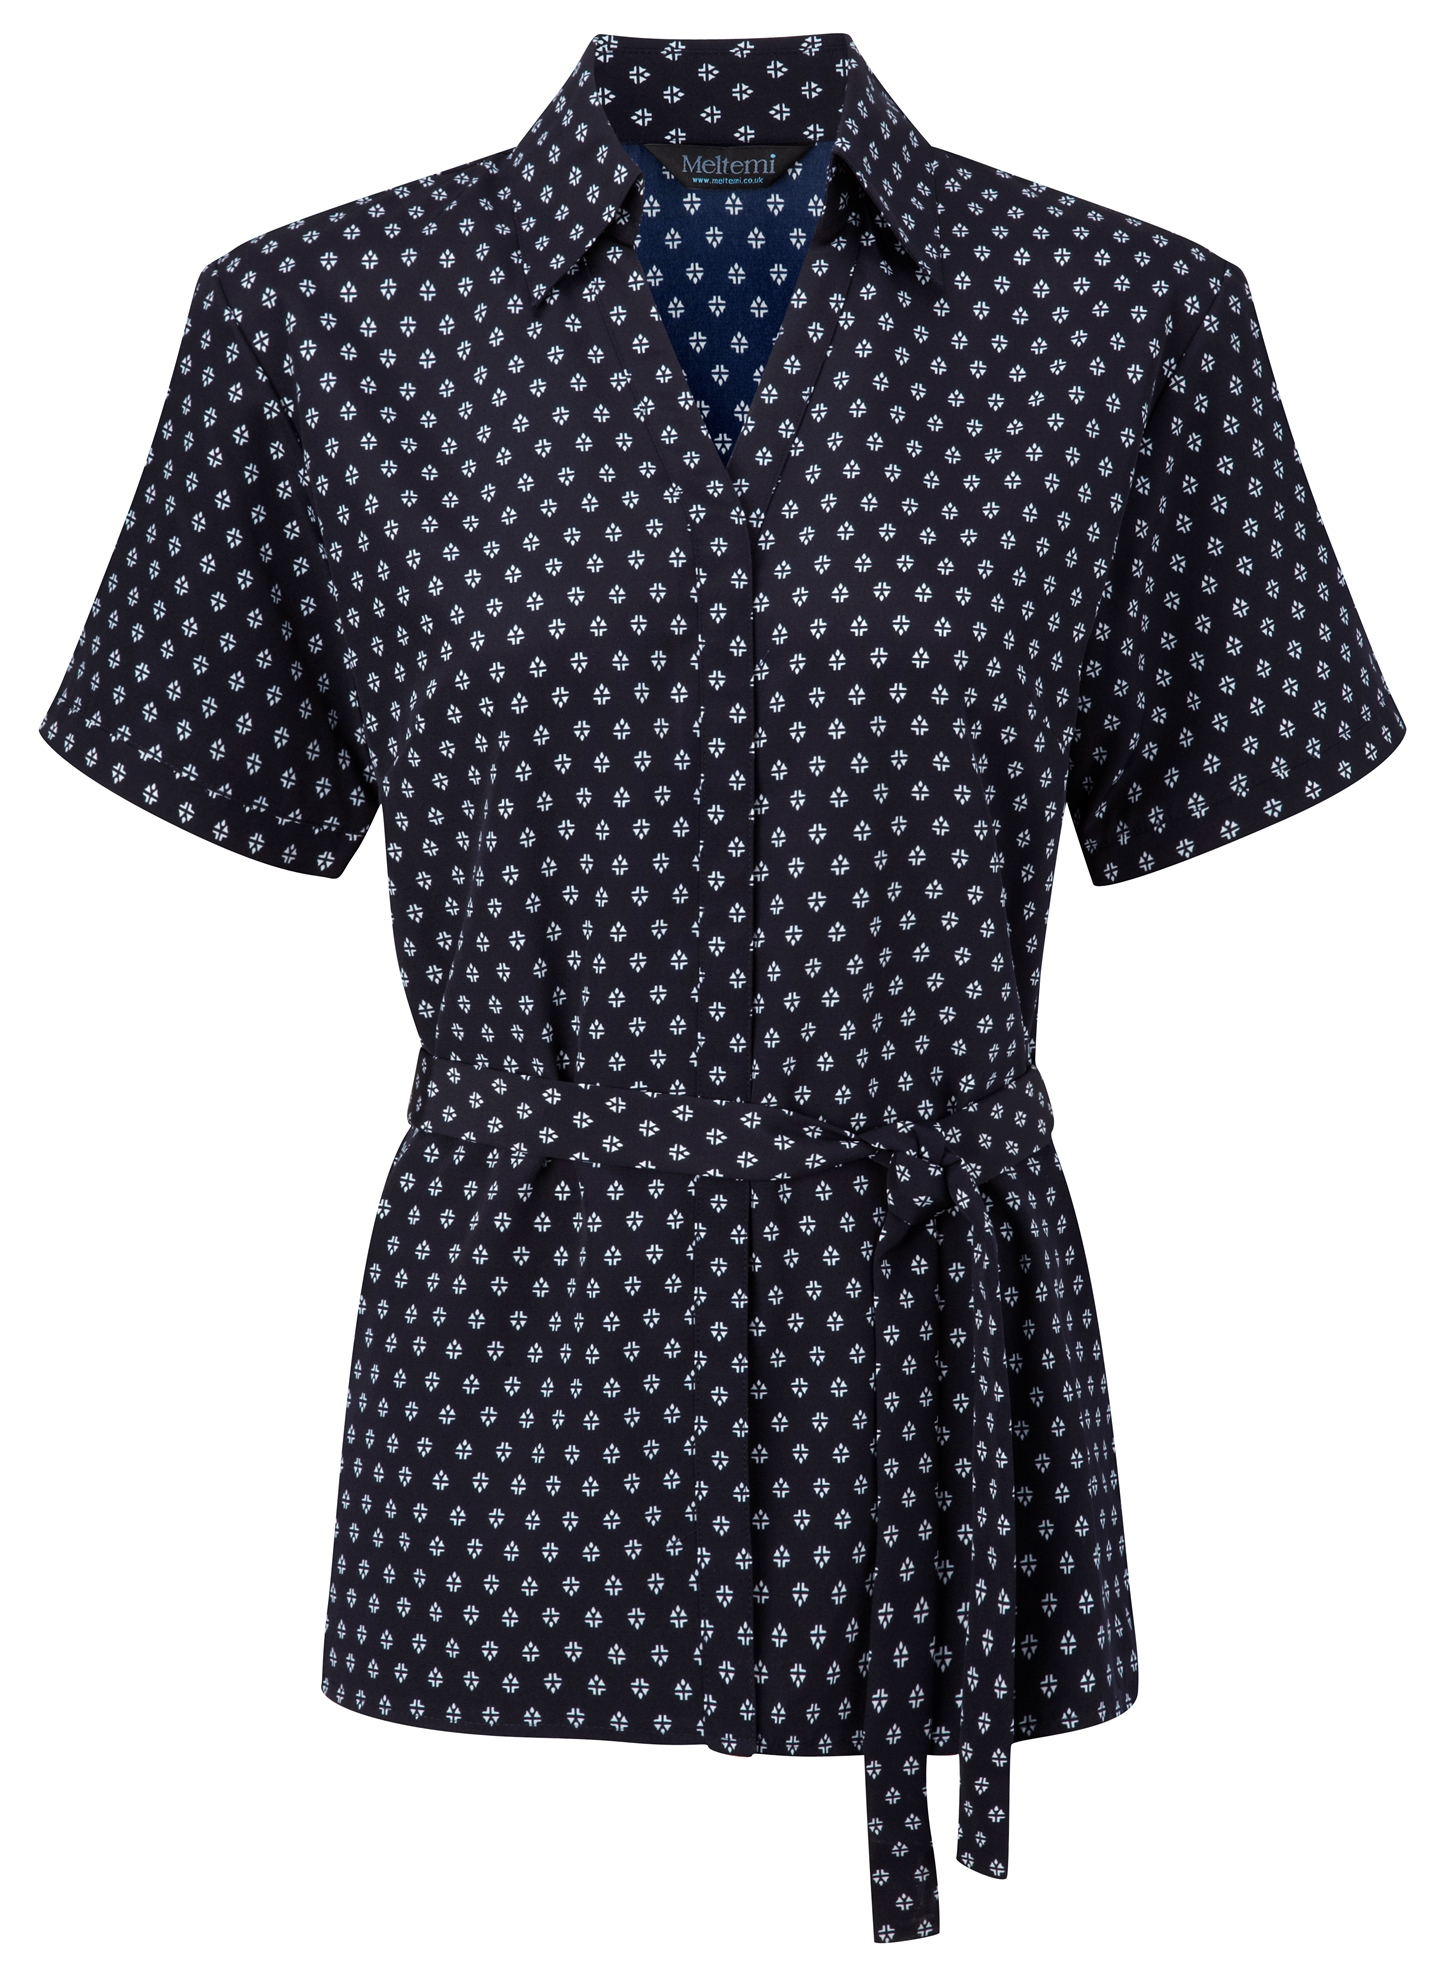 Picture of Looser Style Polyester Blouse - Navy/White Fleur Print